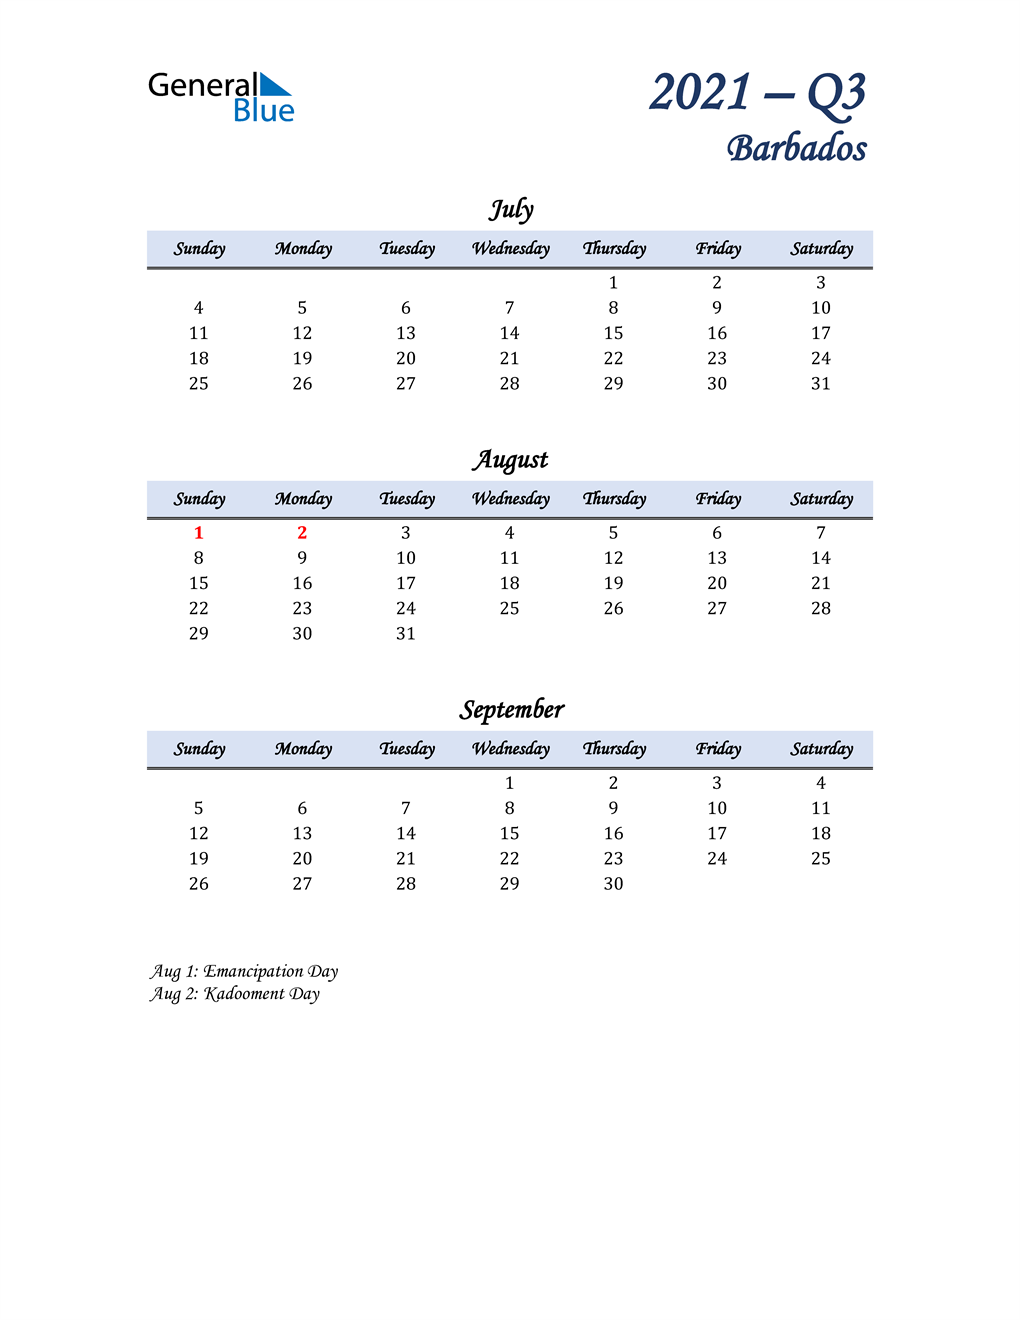 July, August, and September Calendar for Barbados